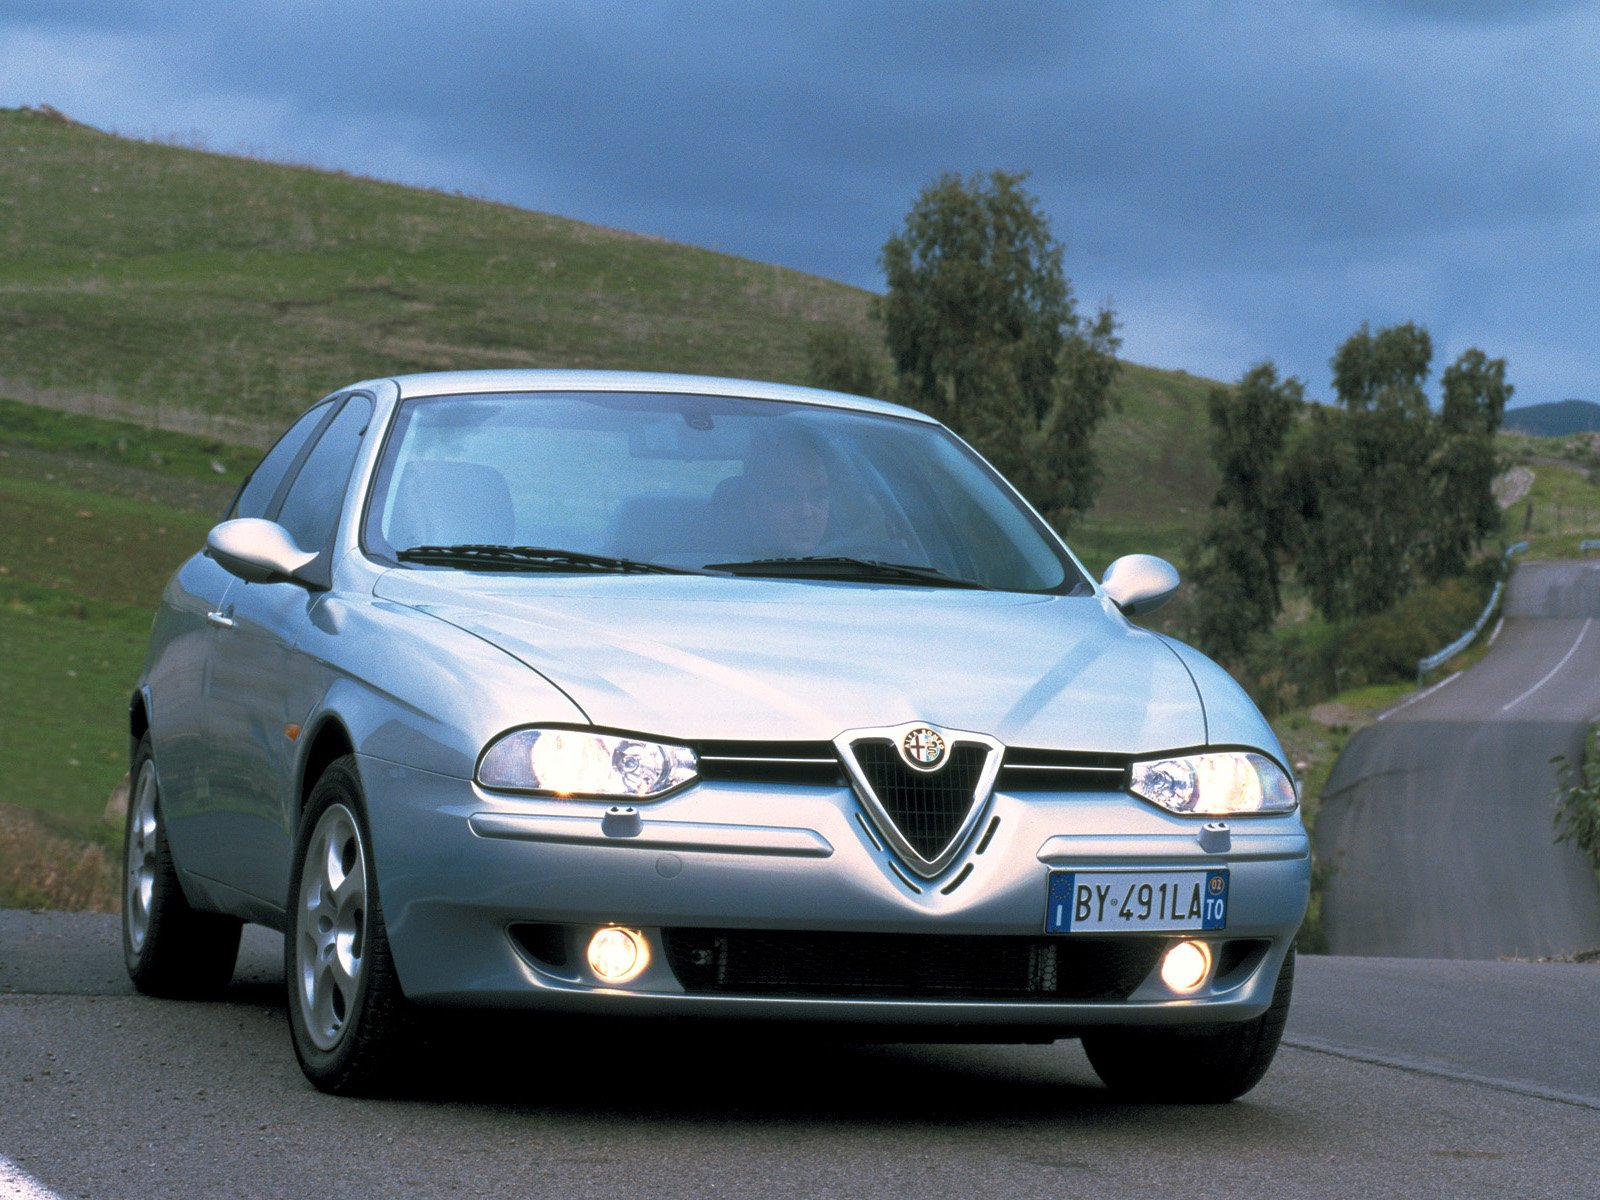 Alfa-Romeo 156 photo 09